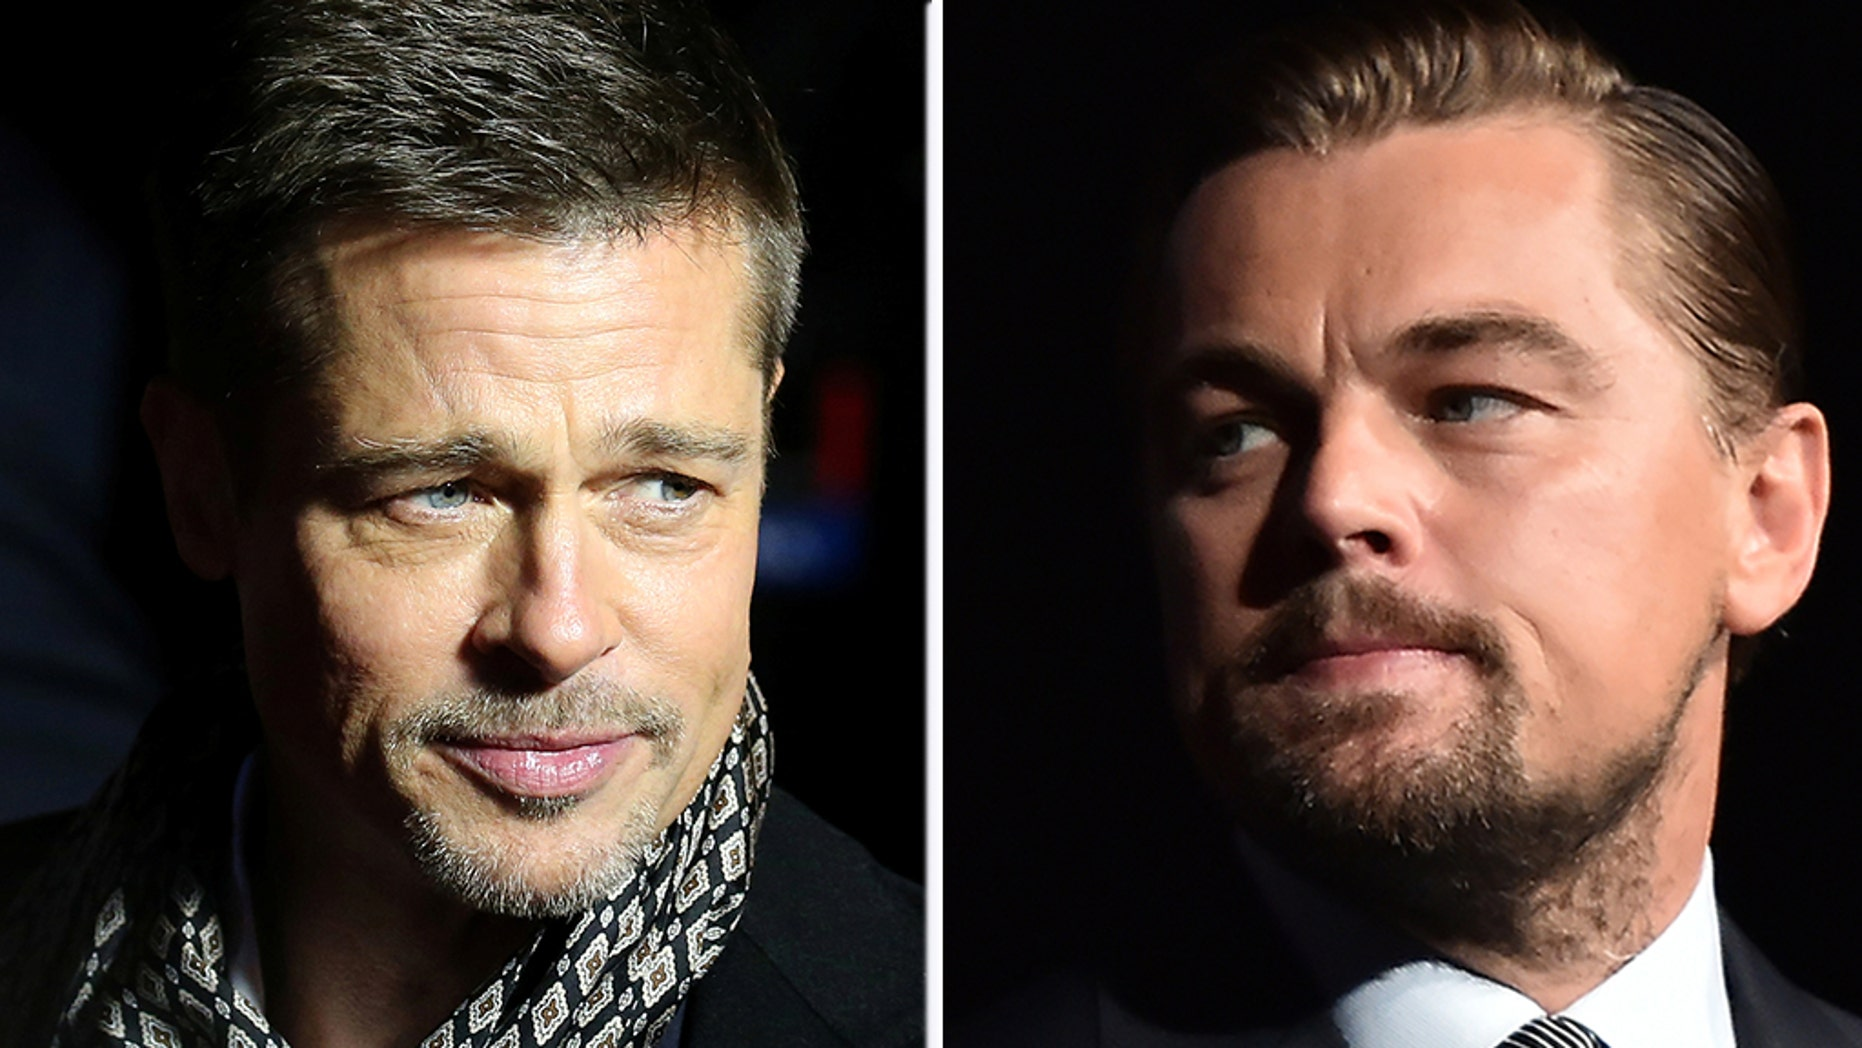 Brad Pitt and Leonardo DiCaprio appeared in a video released on Friday by NowThis News.